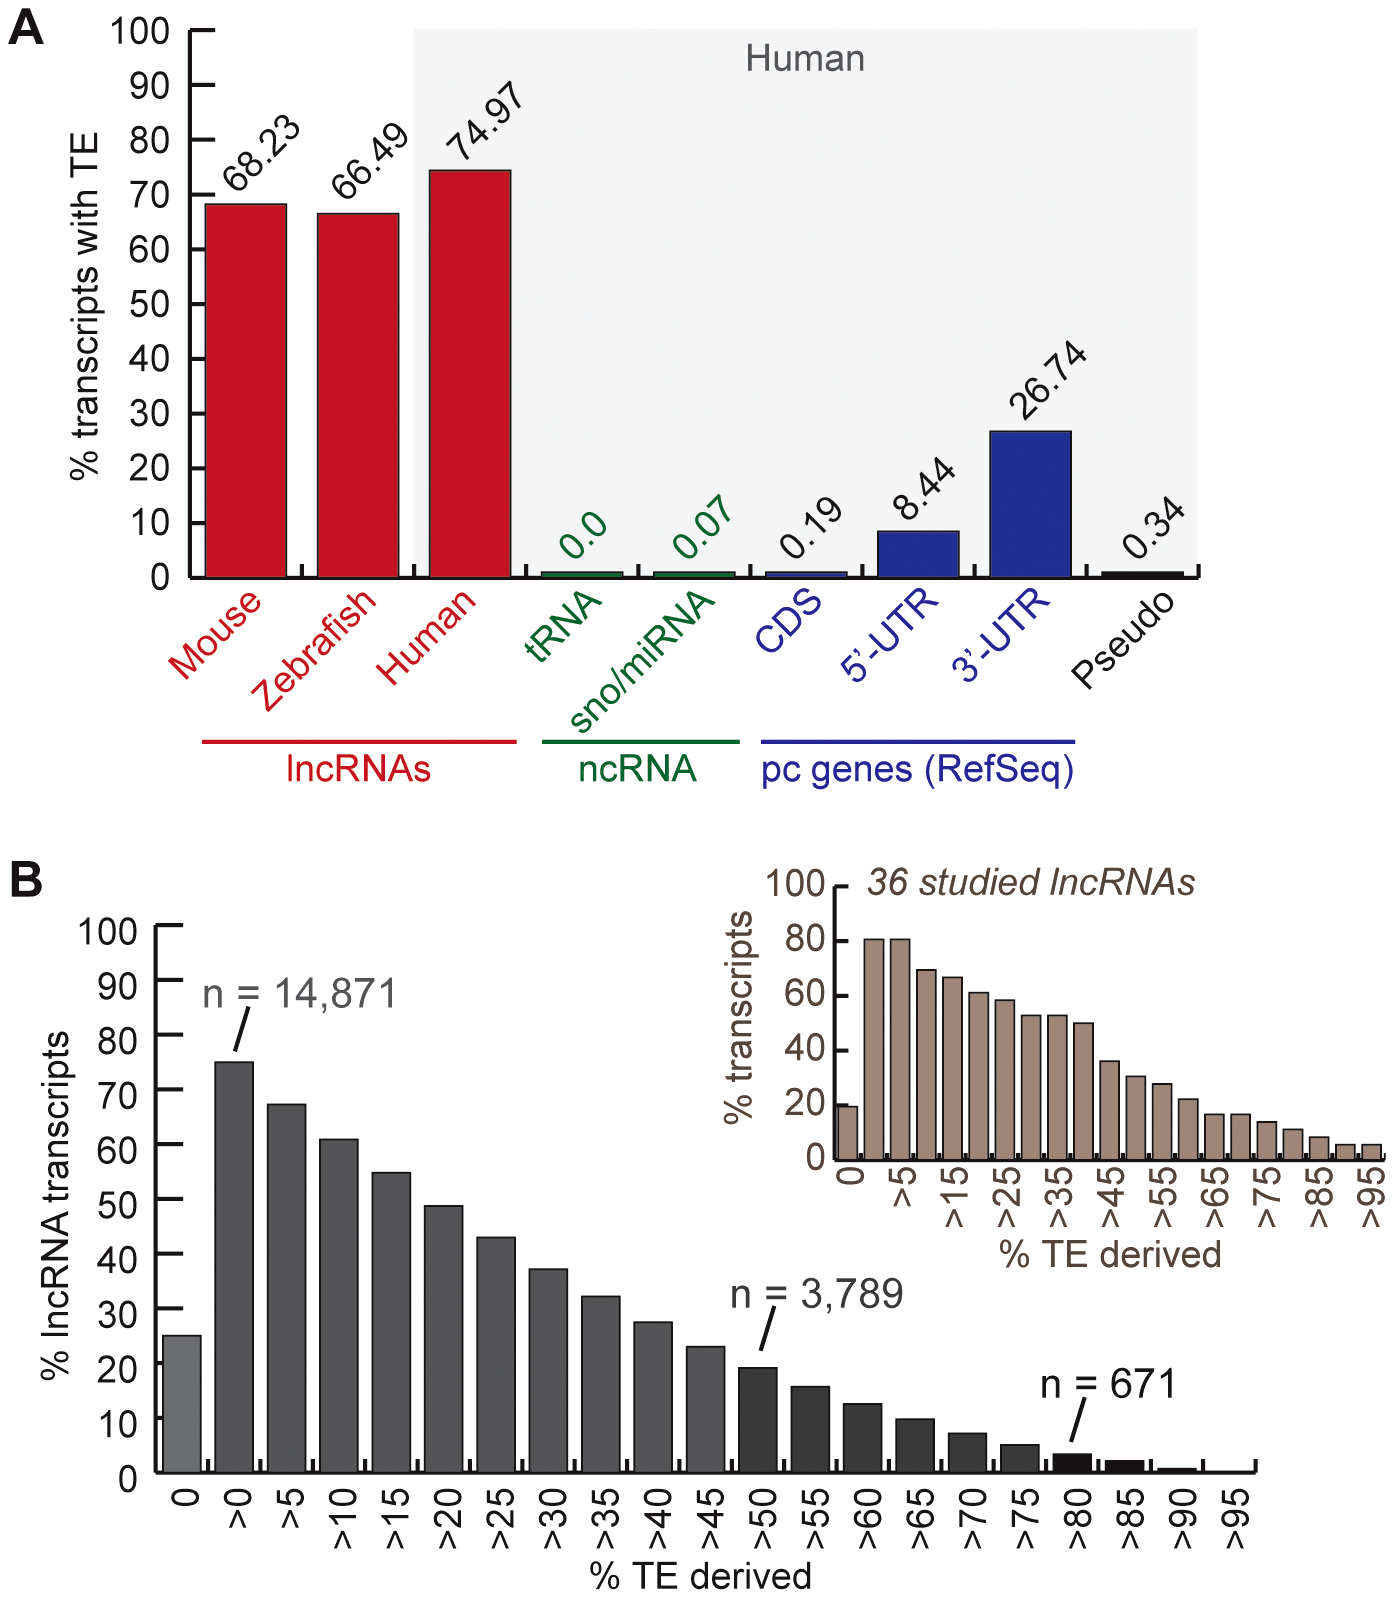 TE occurrence in lncRNAs.